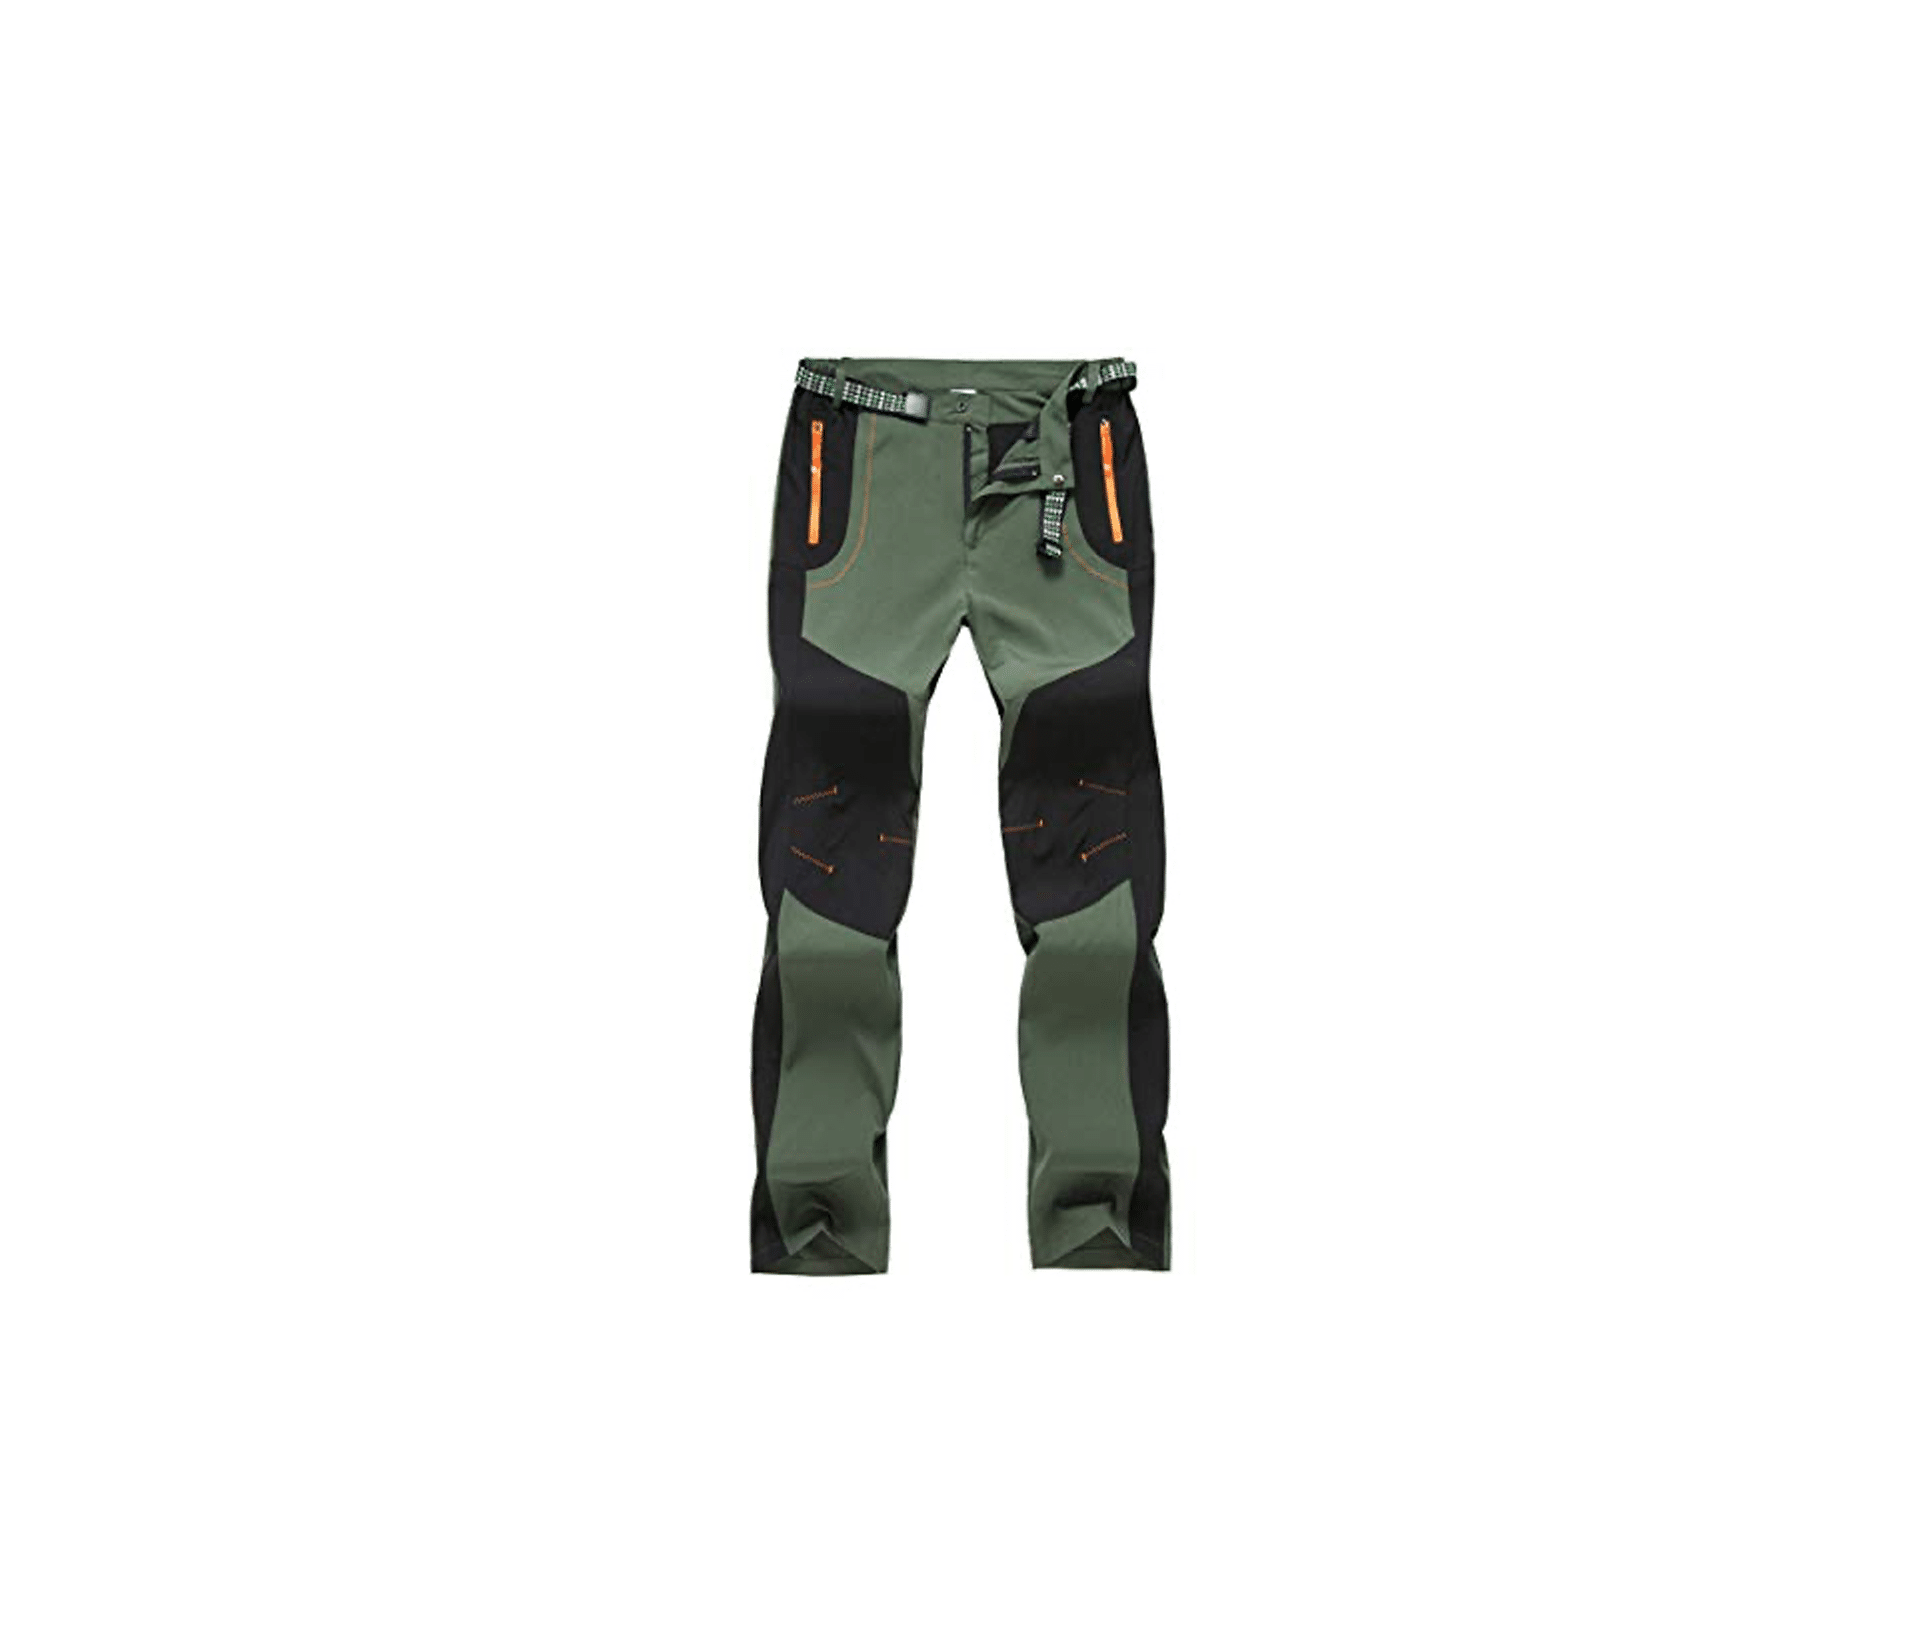 Ceyue Durable Outdoor Hiking Pants